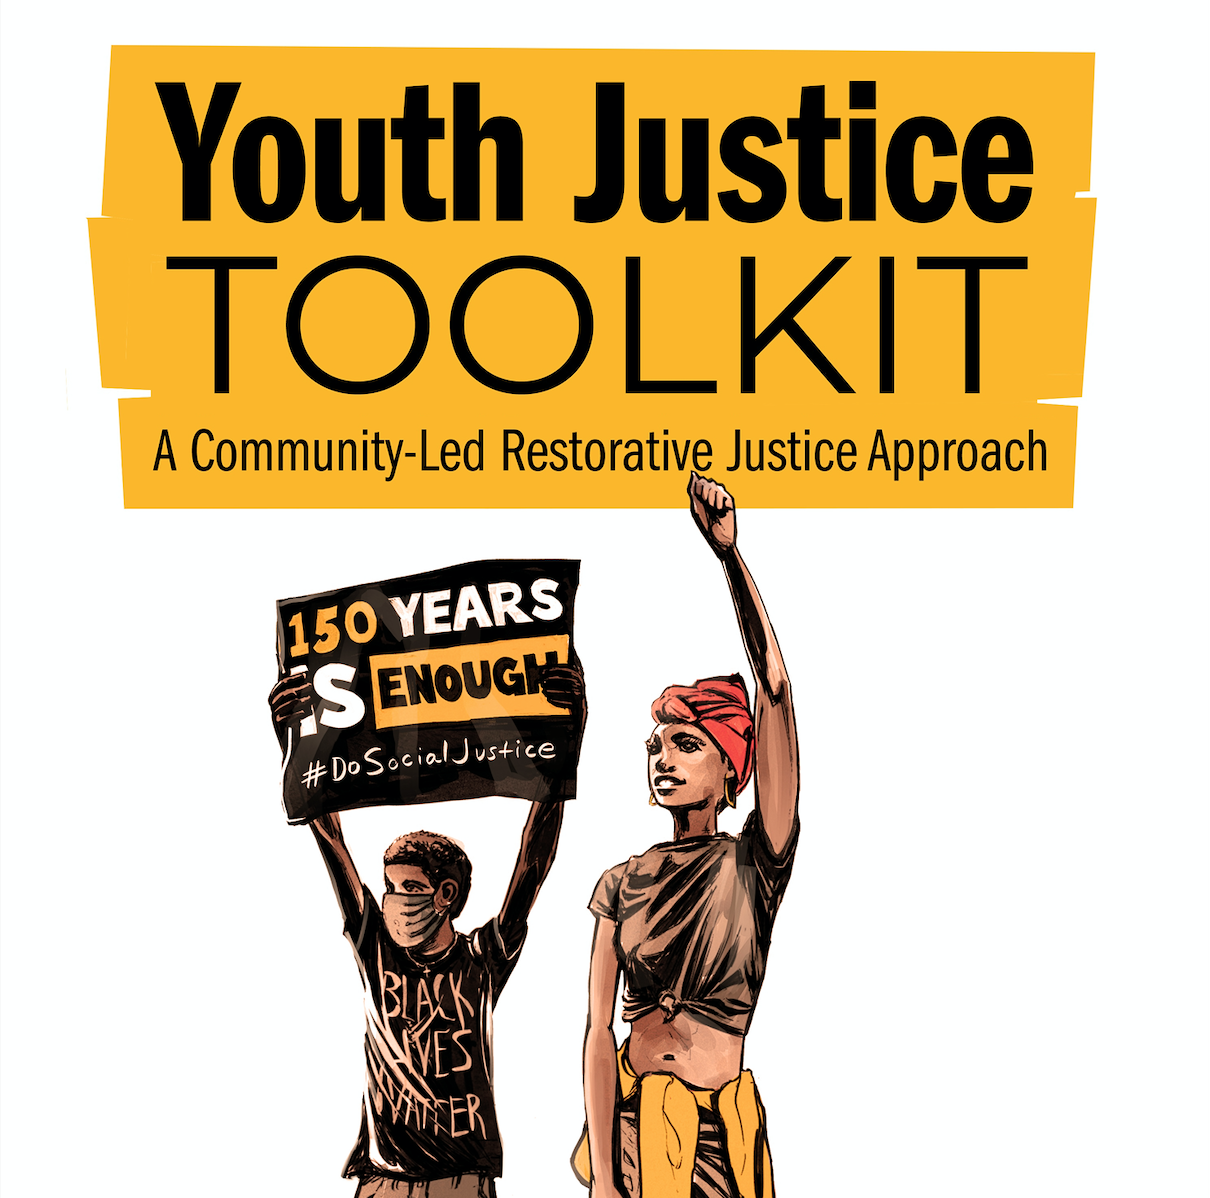 Click here for our Youth Justice Toolkit: A Community Led Restorative Justice Approach